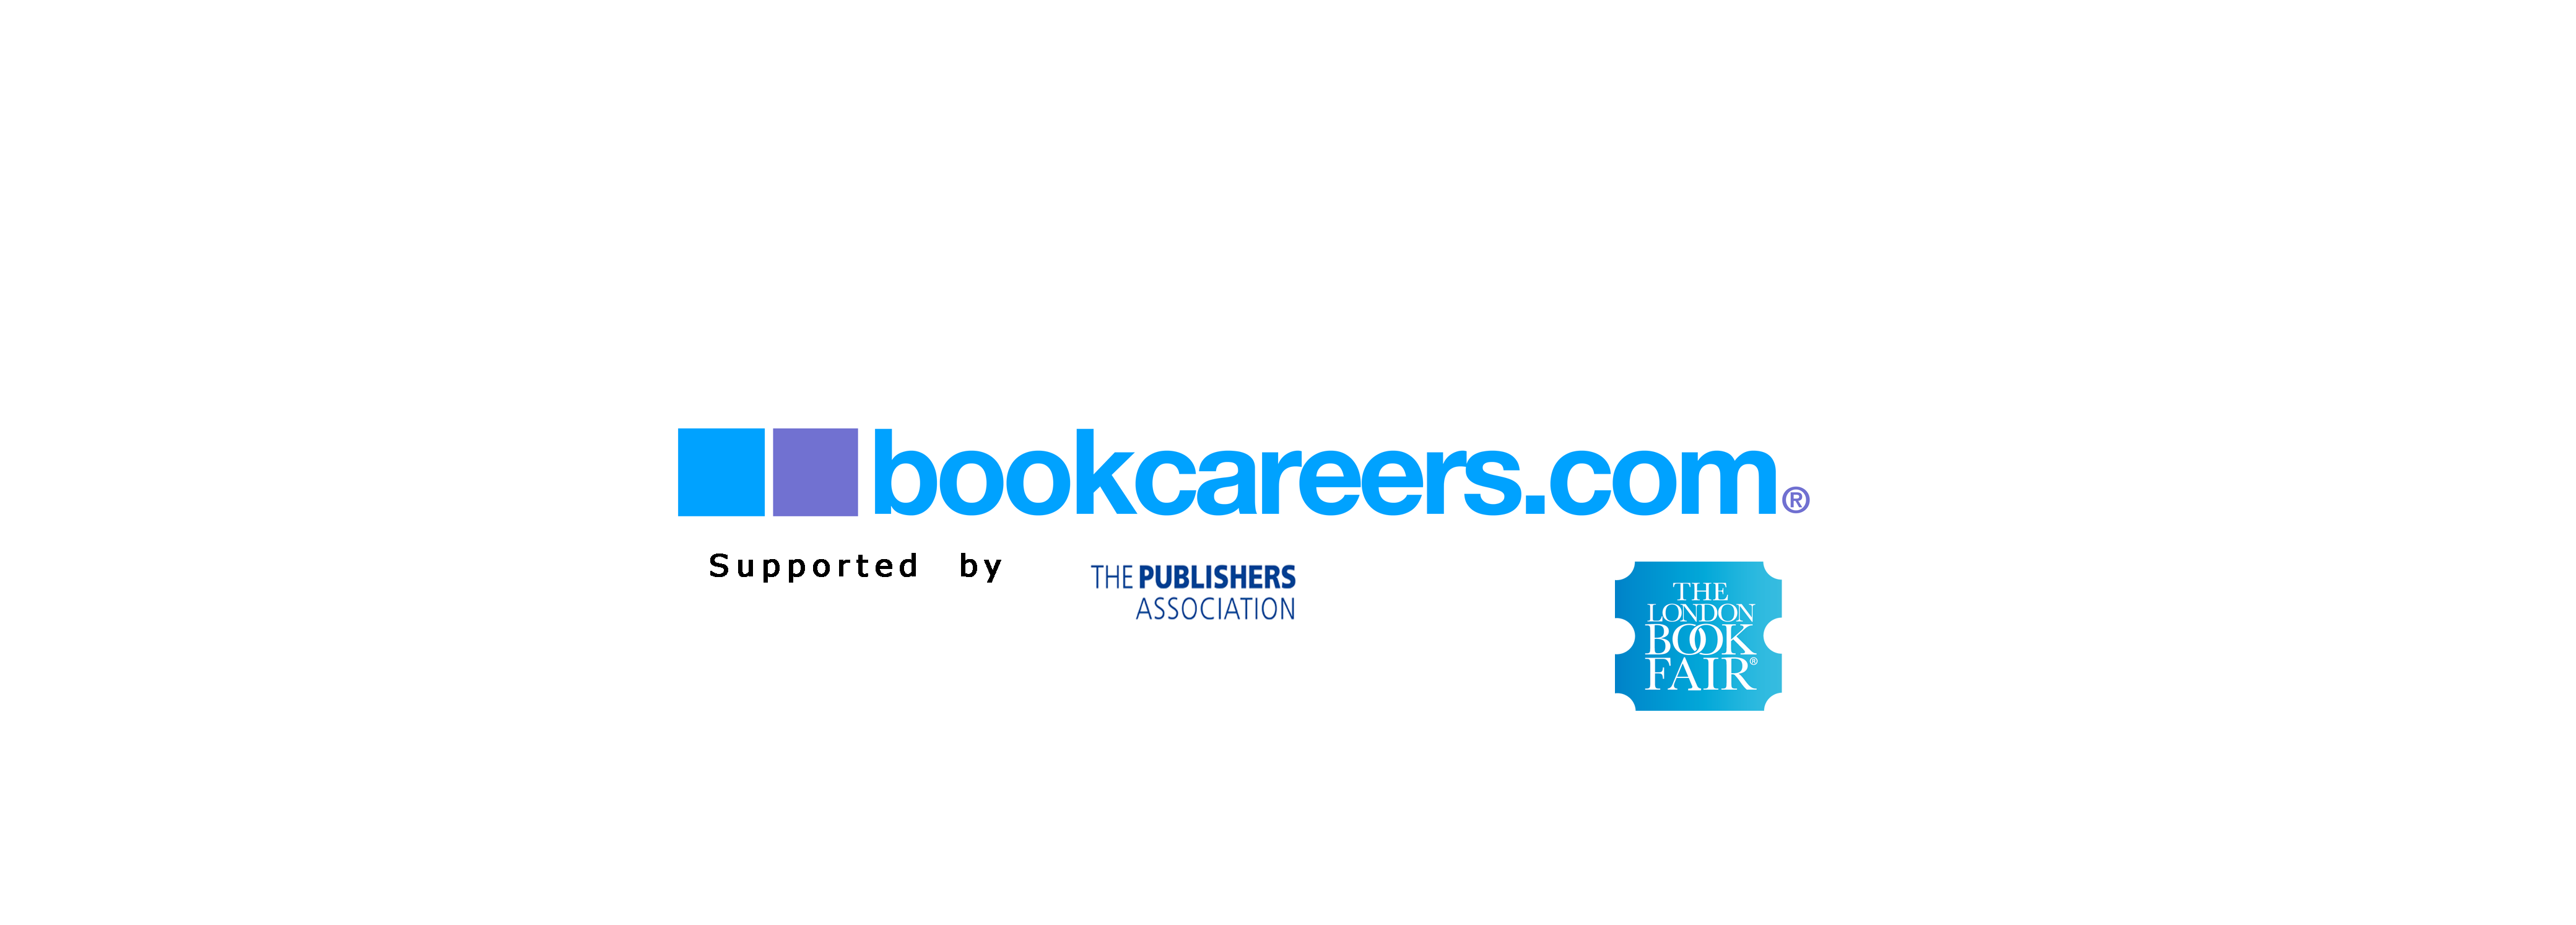 bookcareers clinic 2017 logo